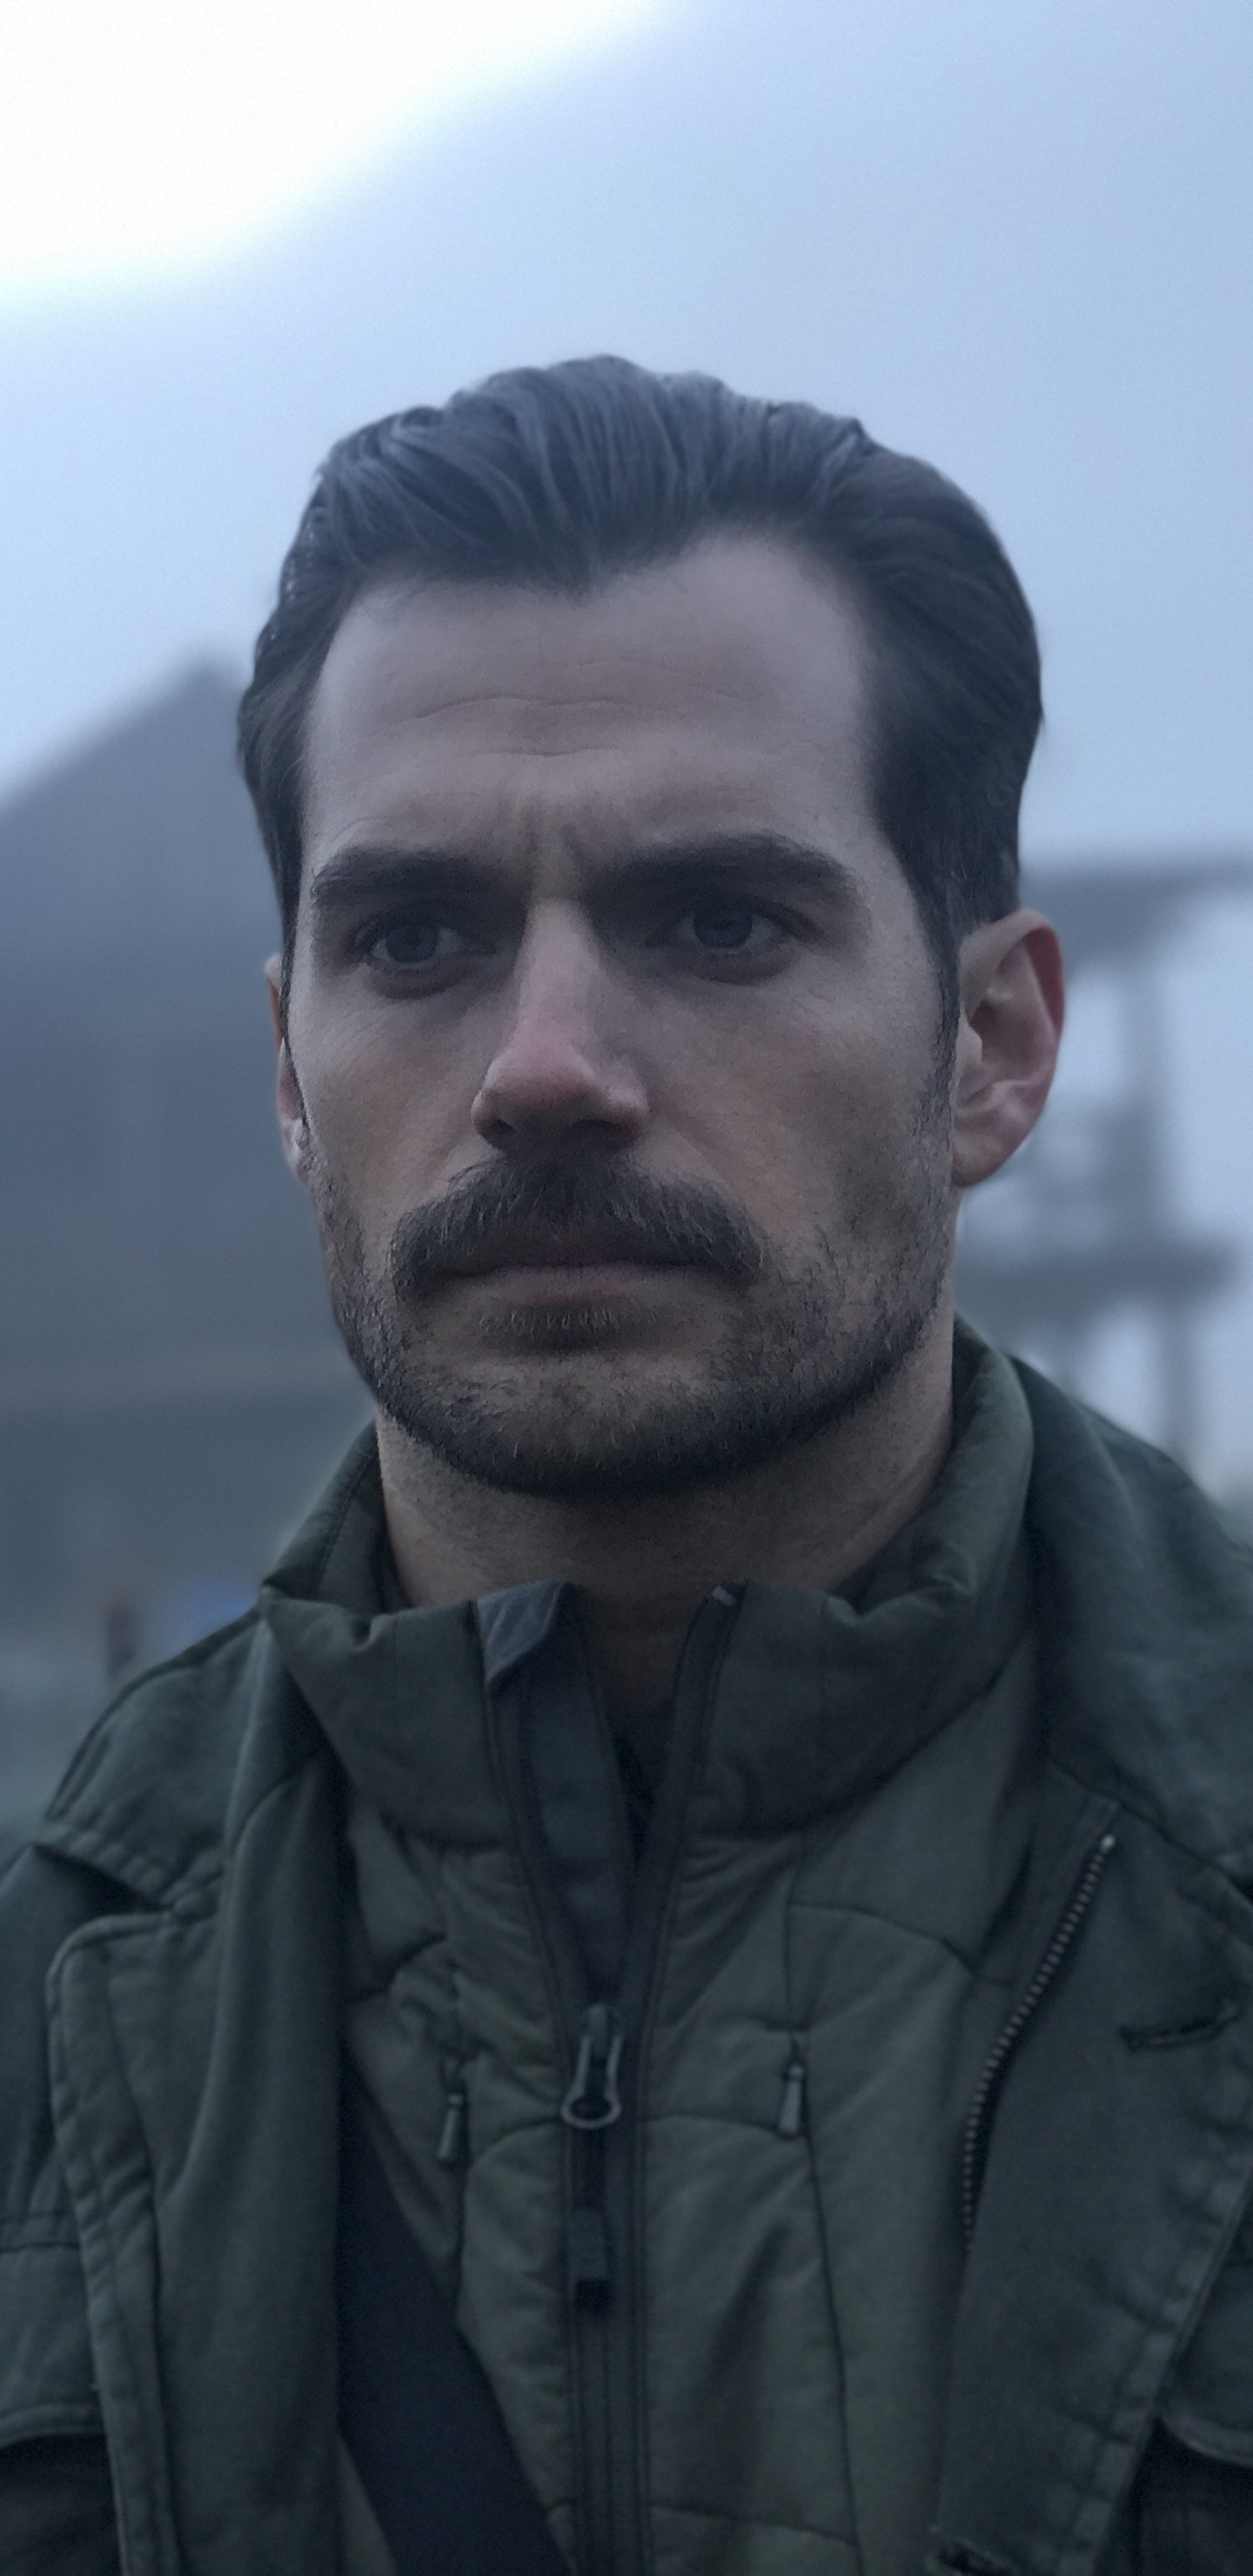 3d Wallpaper S8 1440x2960 Henry Cavill In Mission Impossible 6 2018